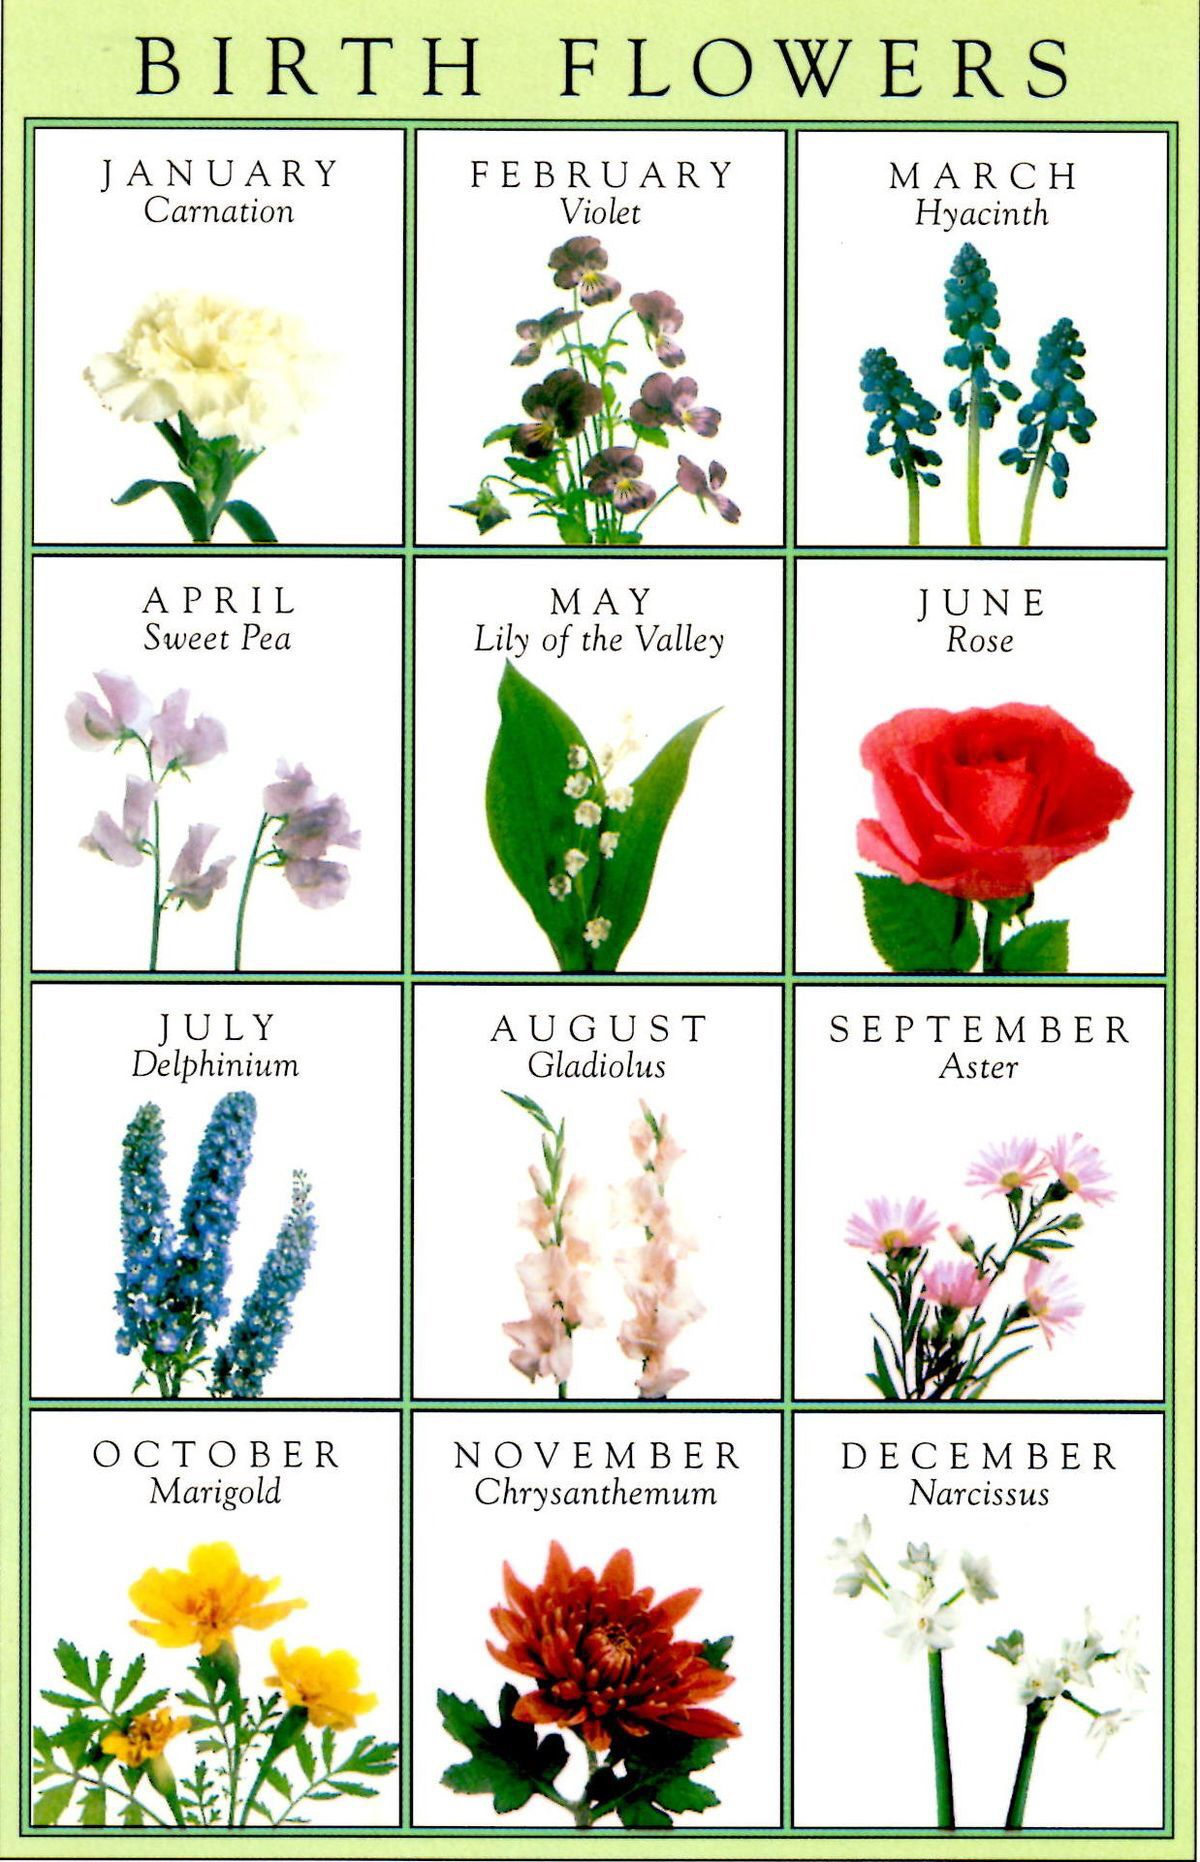 January Carnation Birth month flowers, Birth flower